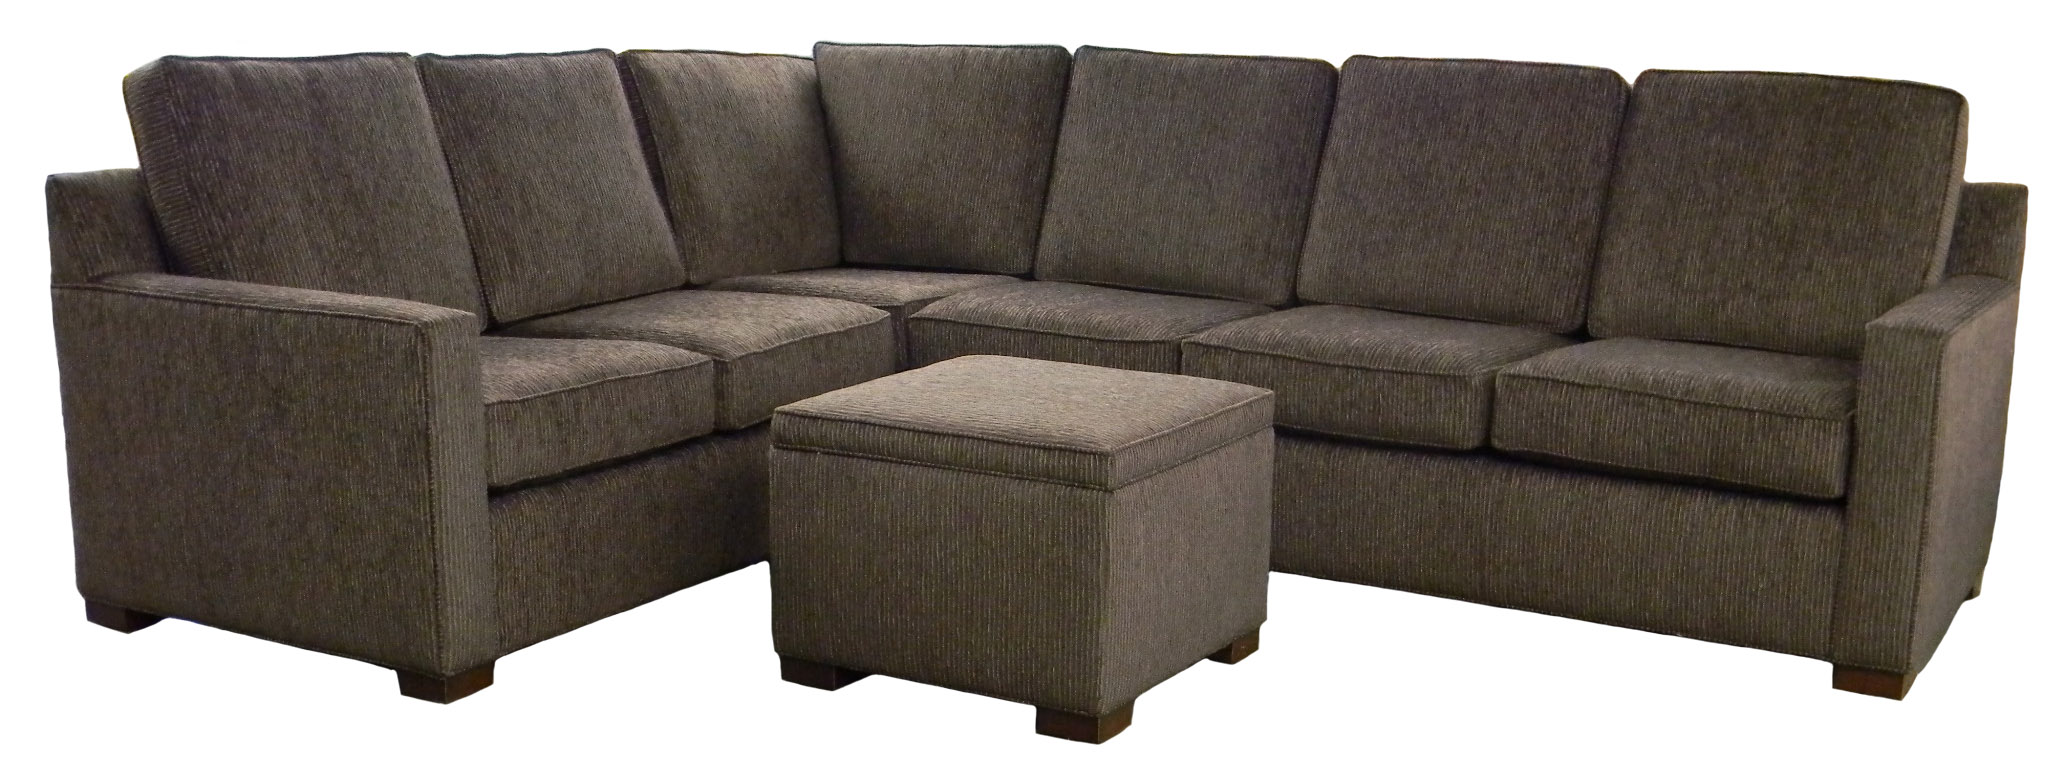 Hall Sectional Sofa   Hawthorne